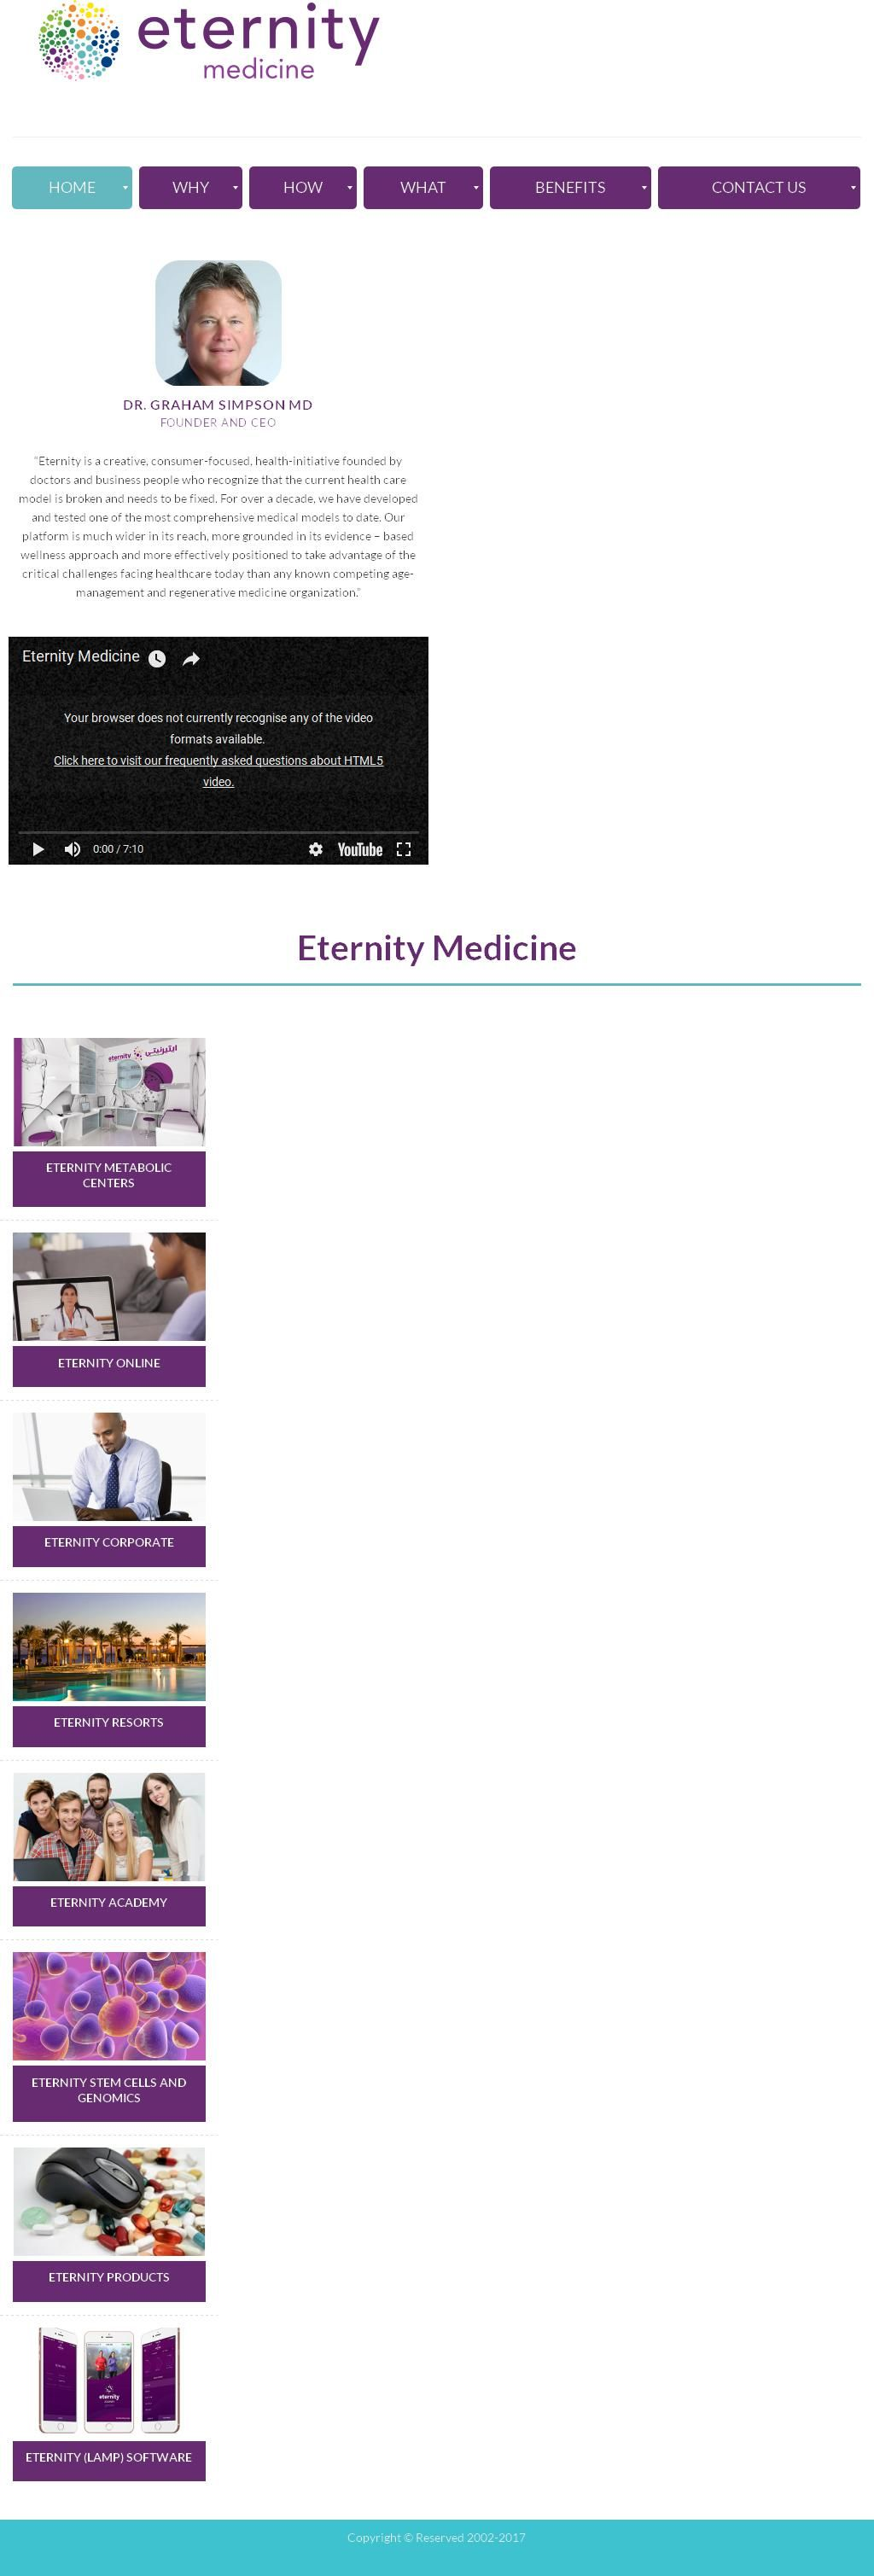 Eternity Medicine Institute Clinic K G Tower 27 Al Seba Street G